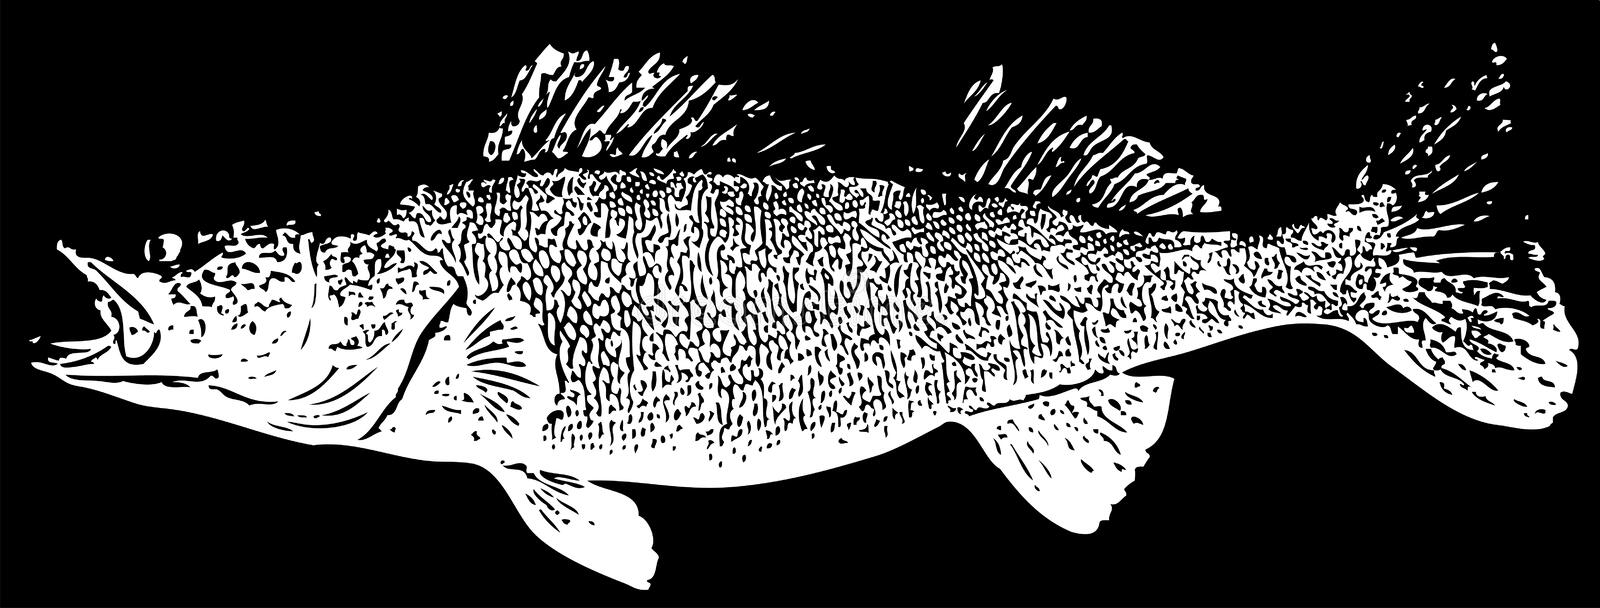 Zander Walleye fisk på svart bakgrund stock illustrationer